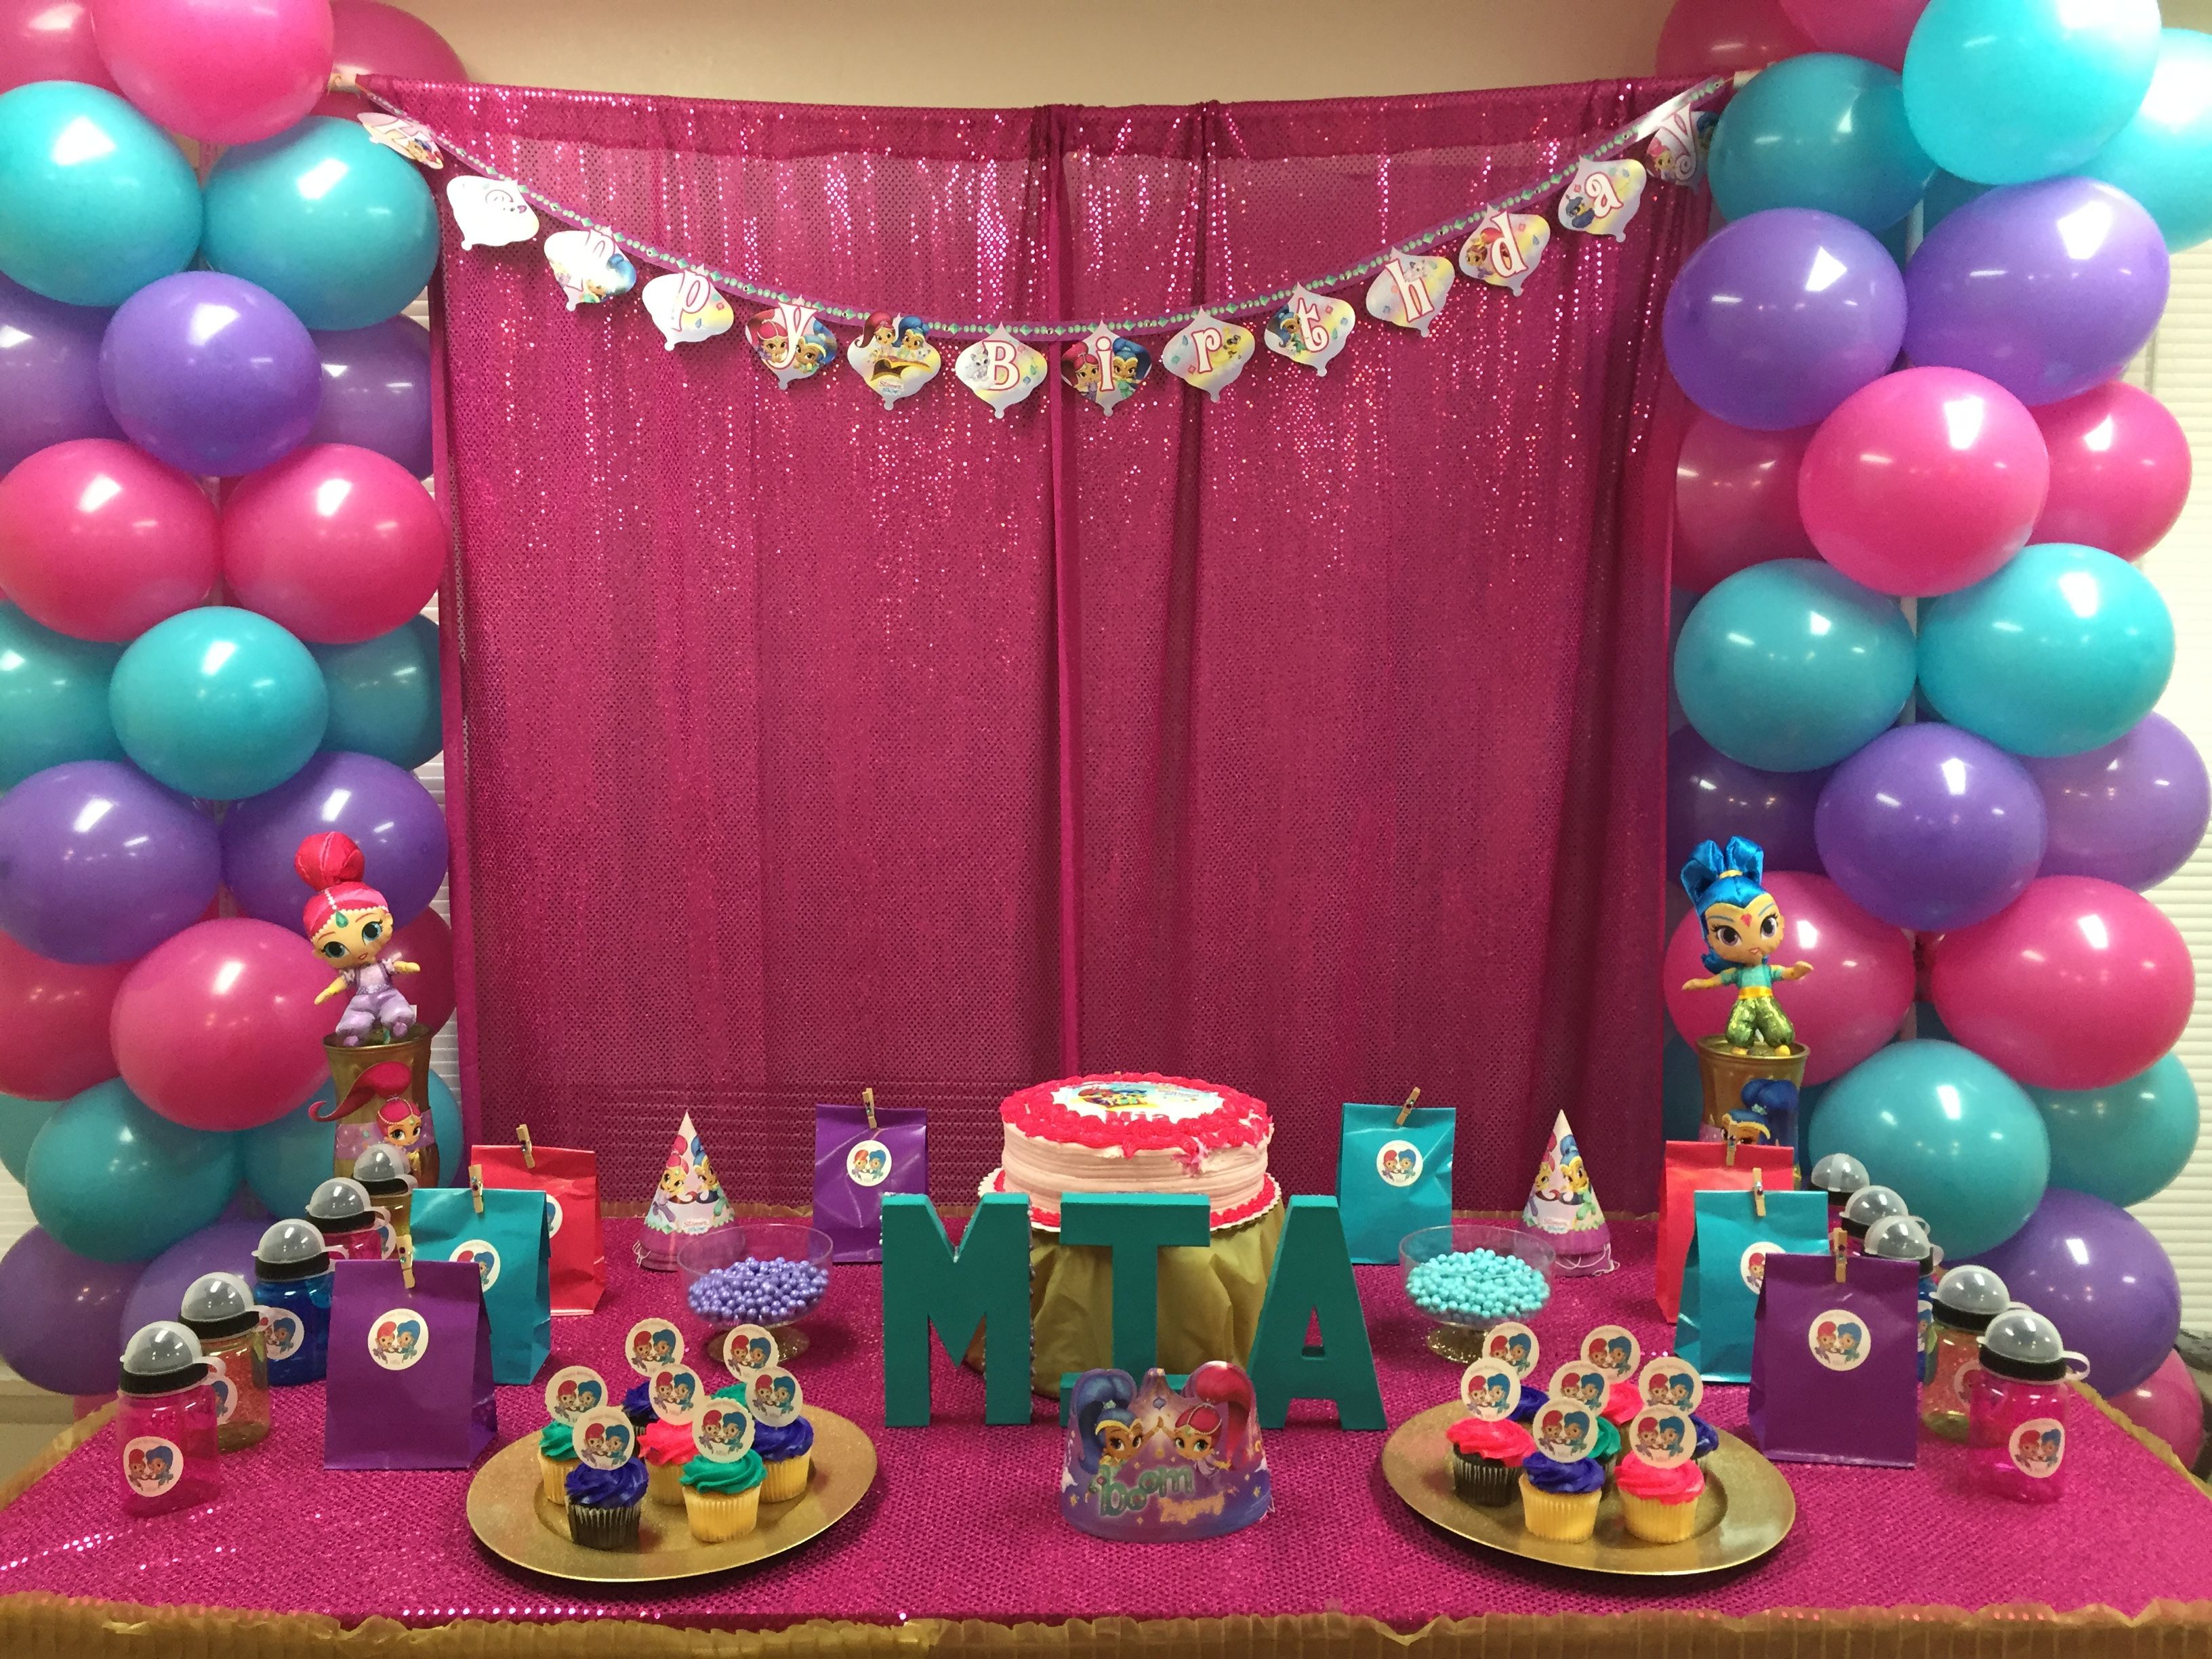 From Shimmer And Shine Birthday Party DIY Source Image